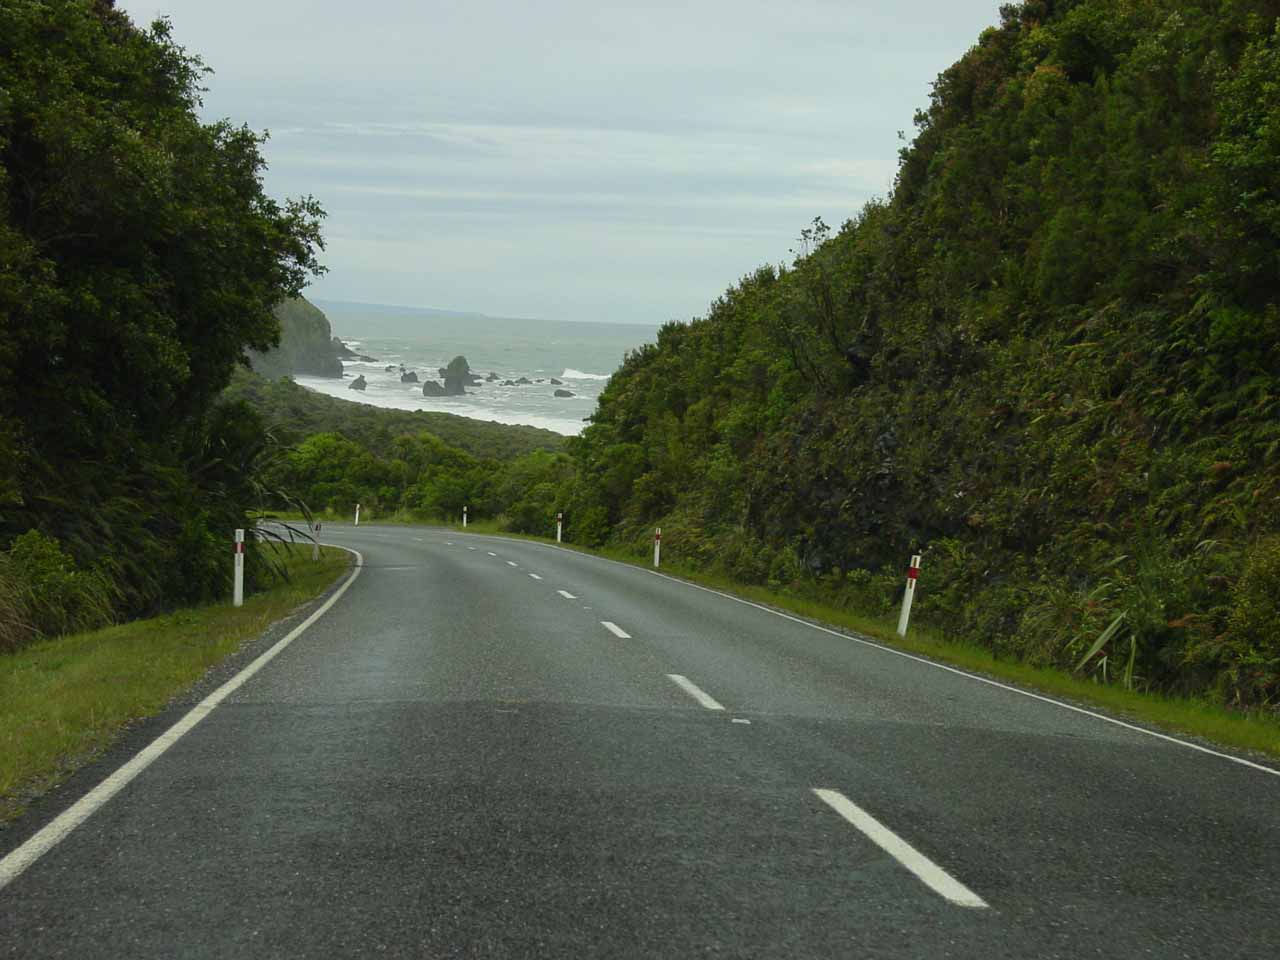 Sometimes driving the rural roads is a pleasure as we're treated to incredible scenery like the West Coast of the South Island of New Zealand shown here